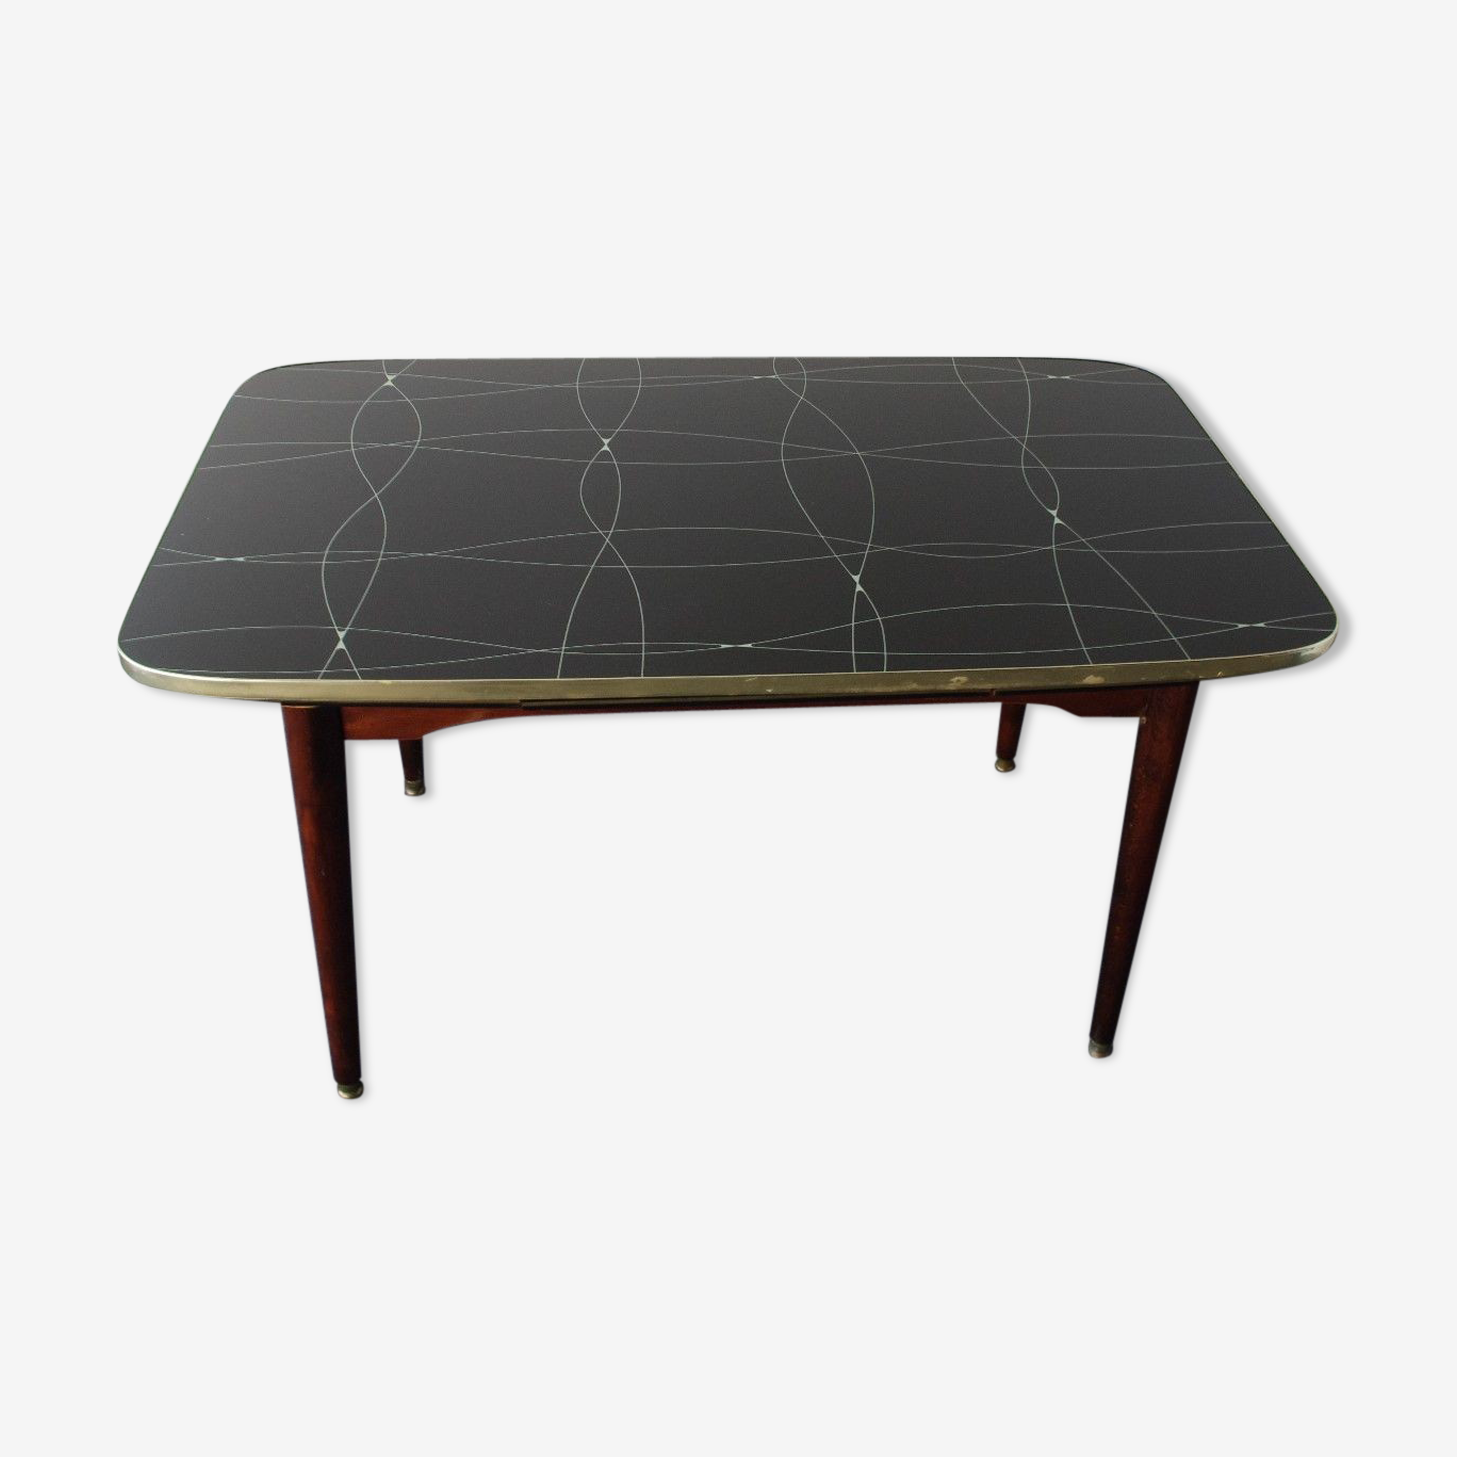 Folding table with black and gold painted glass, 1950